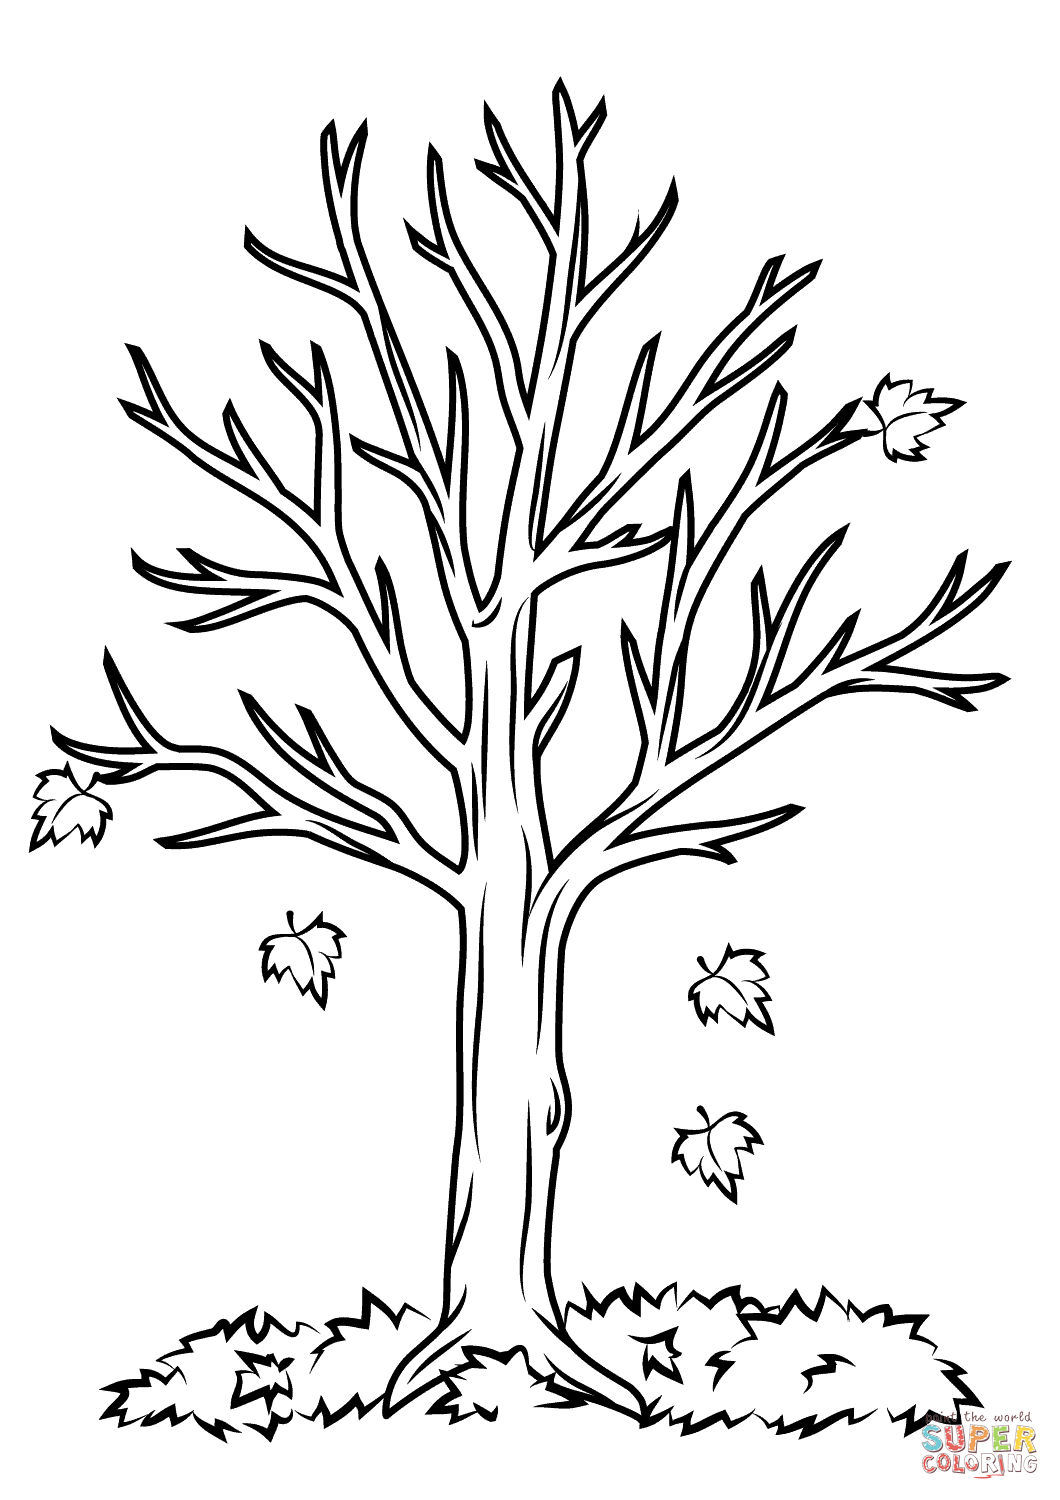 1060x1500 Fall Tree Coloring Page, Fall Coloring Pages Coloring Town